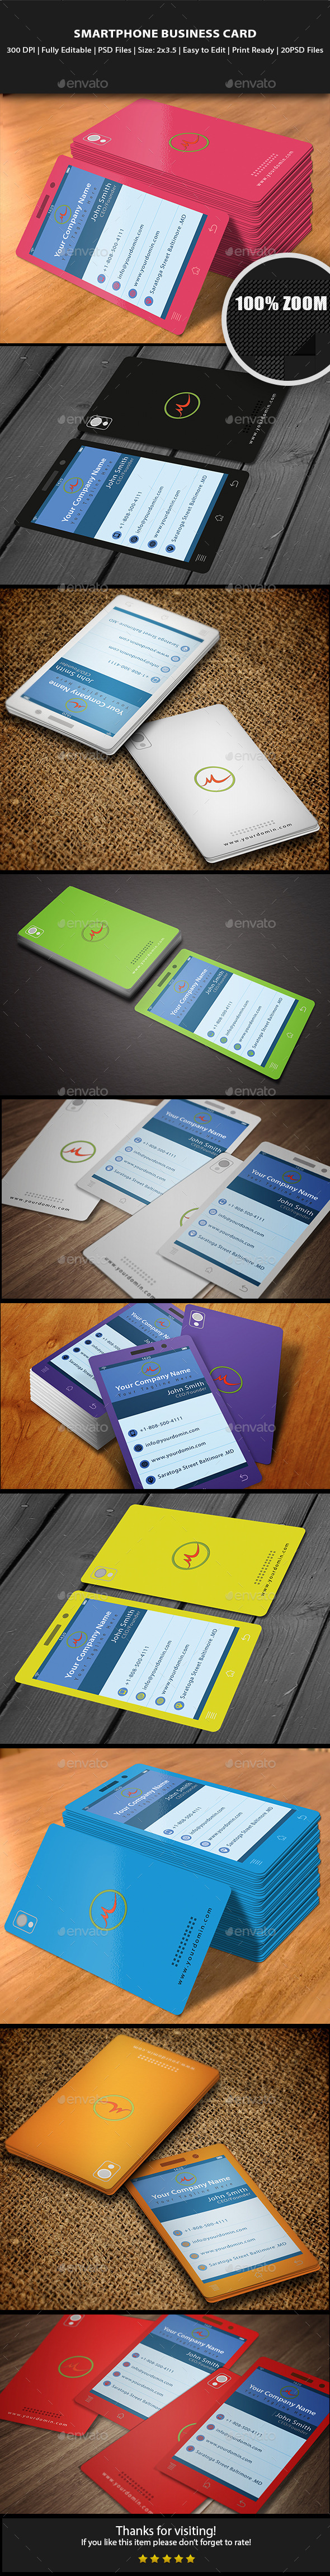 GraphicRiver Smartphone Business Card 10641564